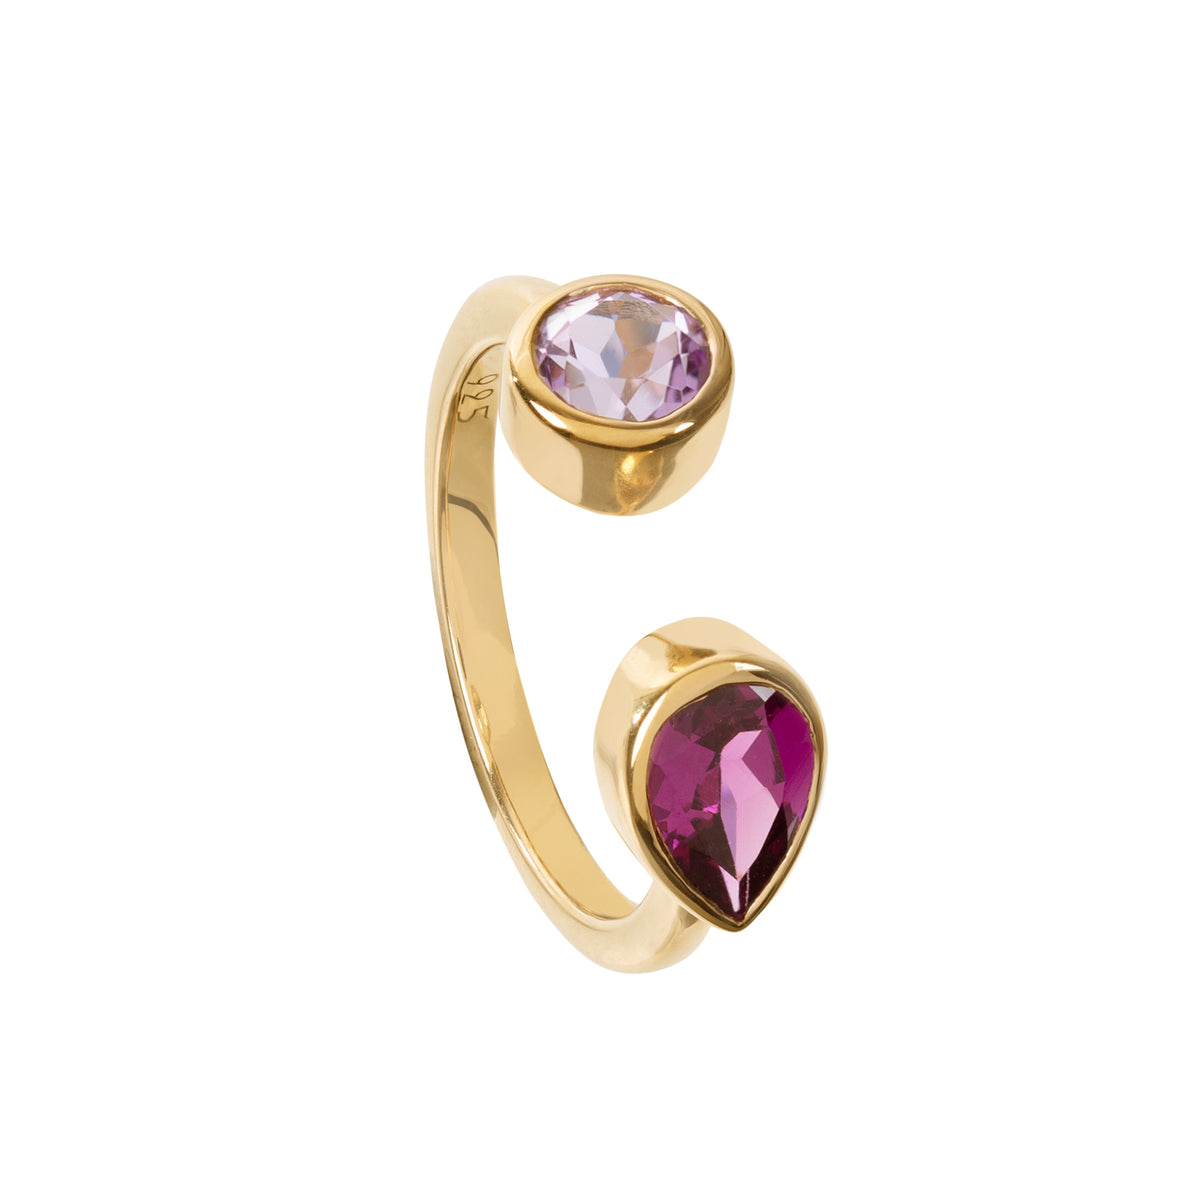 Spectrum Rhodolite and Amethyst Ring